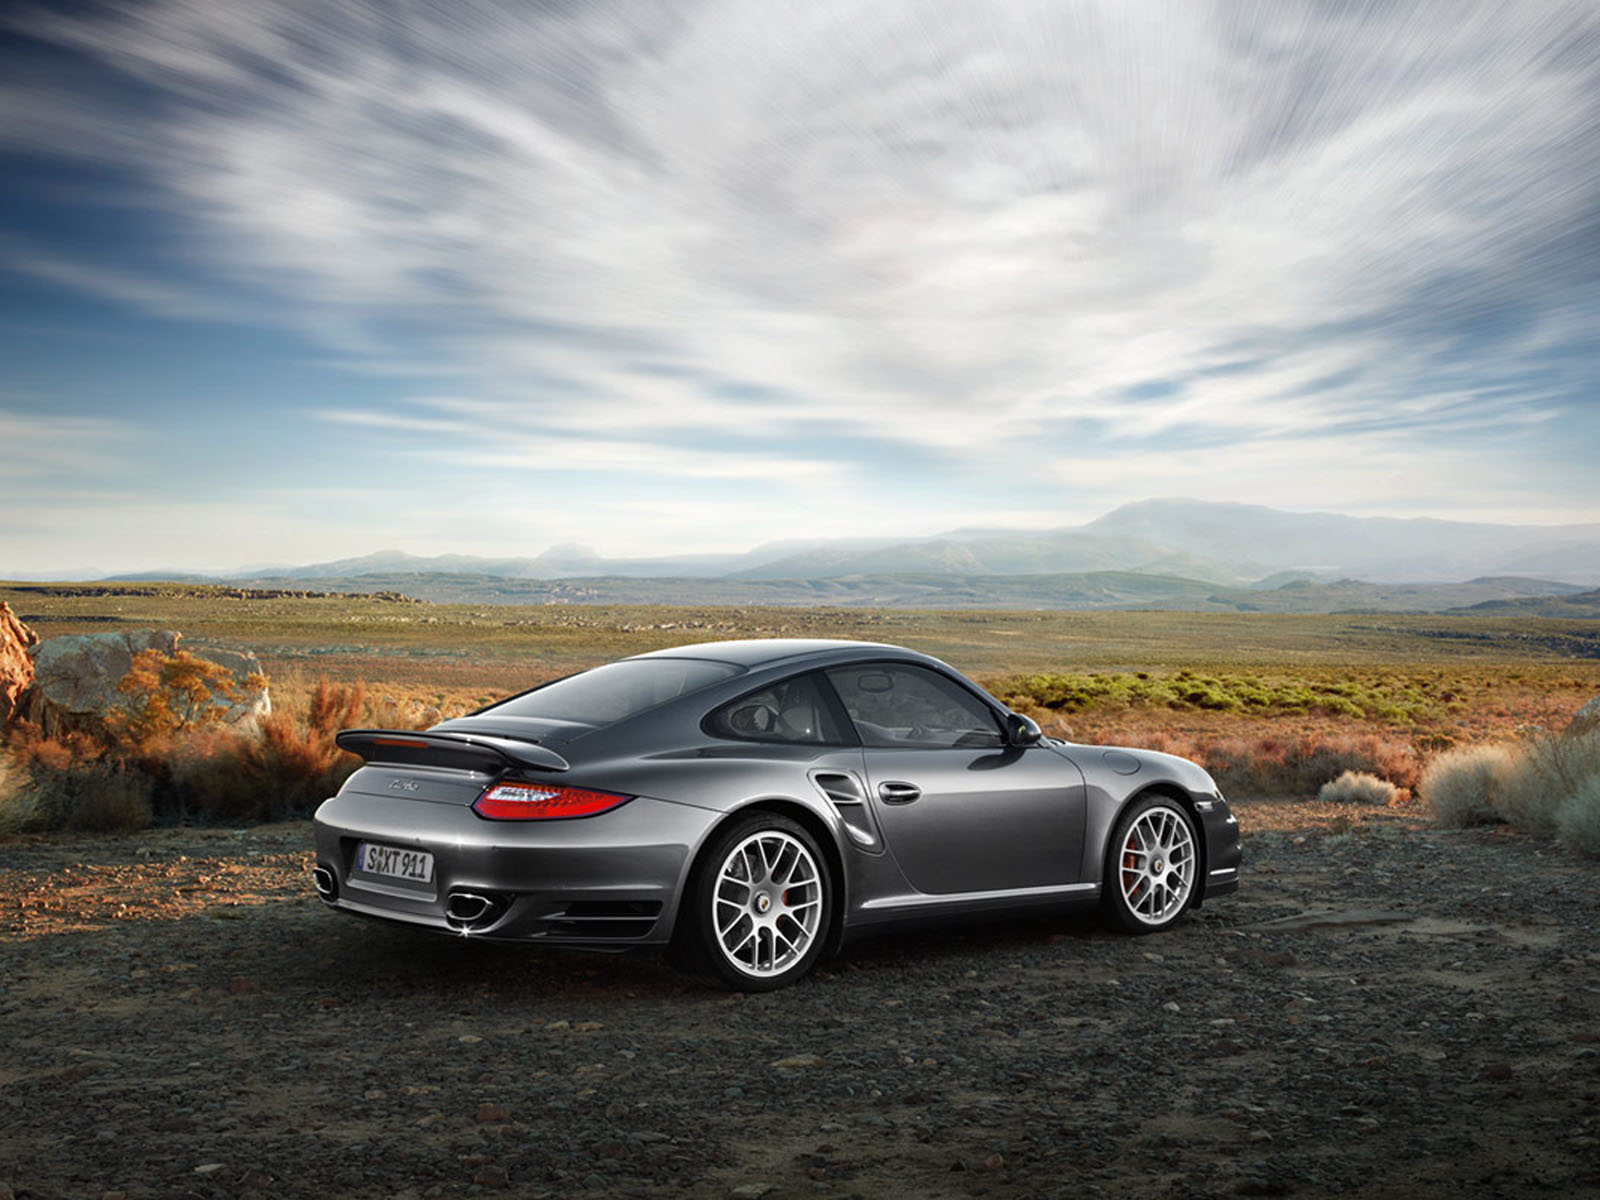 wallpapers: Porsche 911 Turbo Car Wallpapers